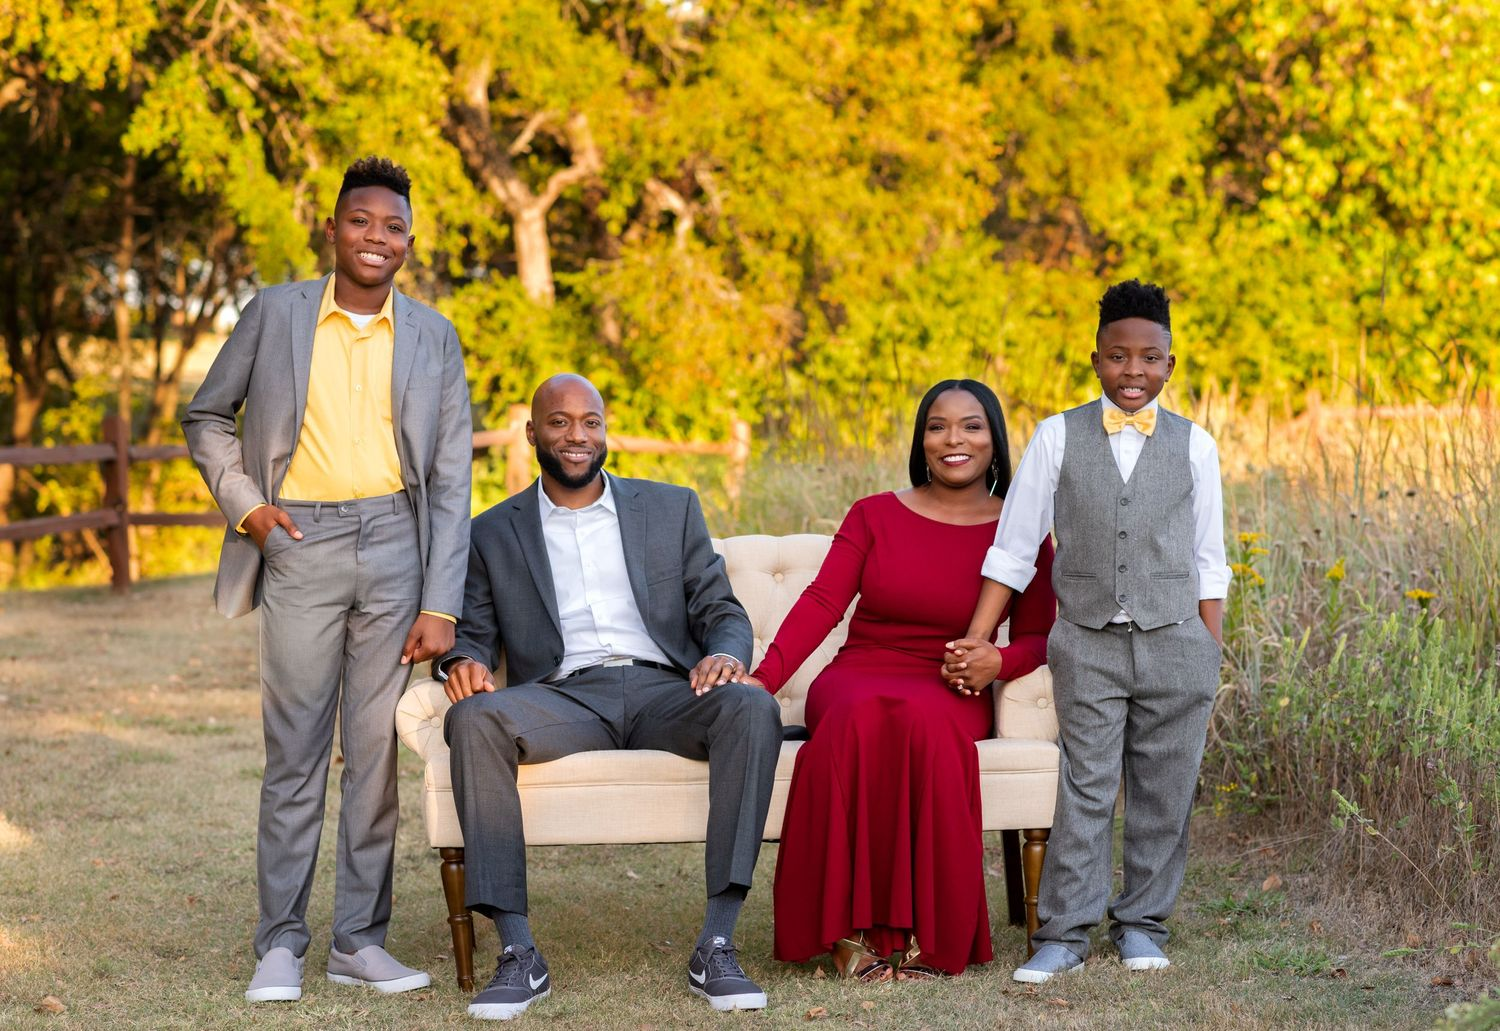 Family photography at Harry Myers Park in Rockwall, Texas by Alicia Wilson Photography